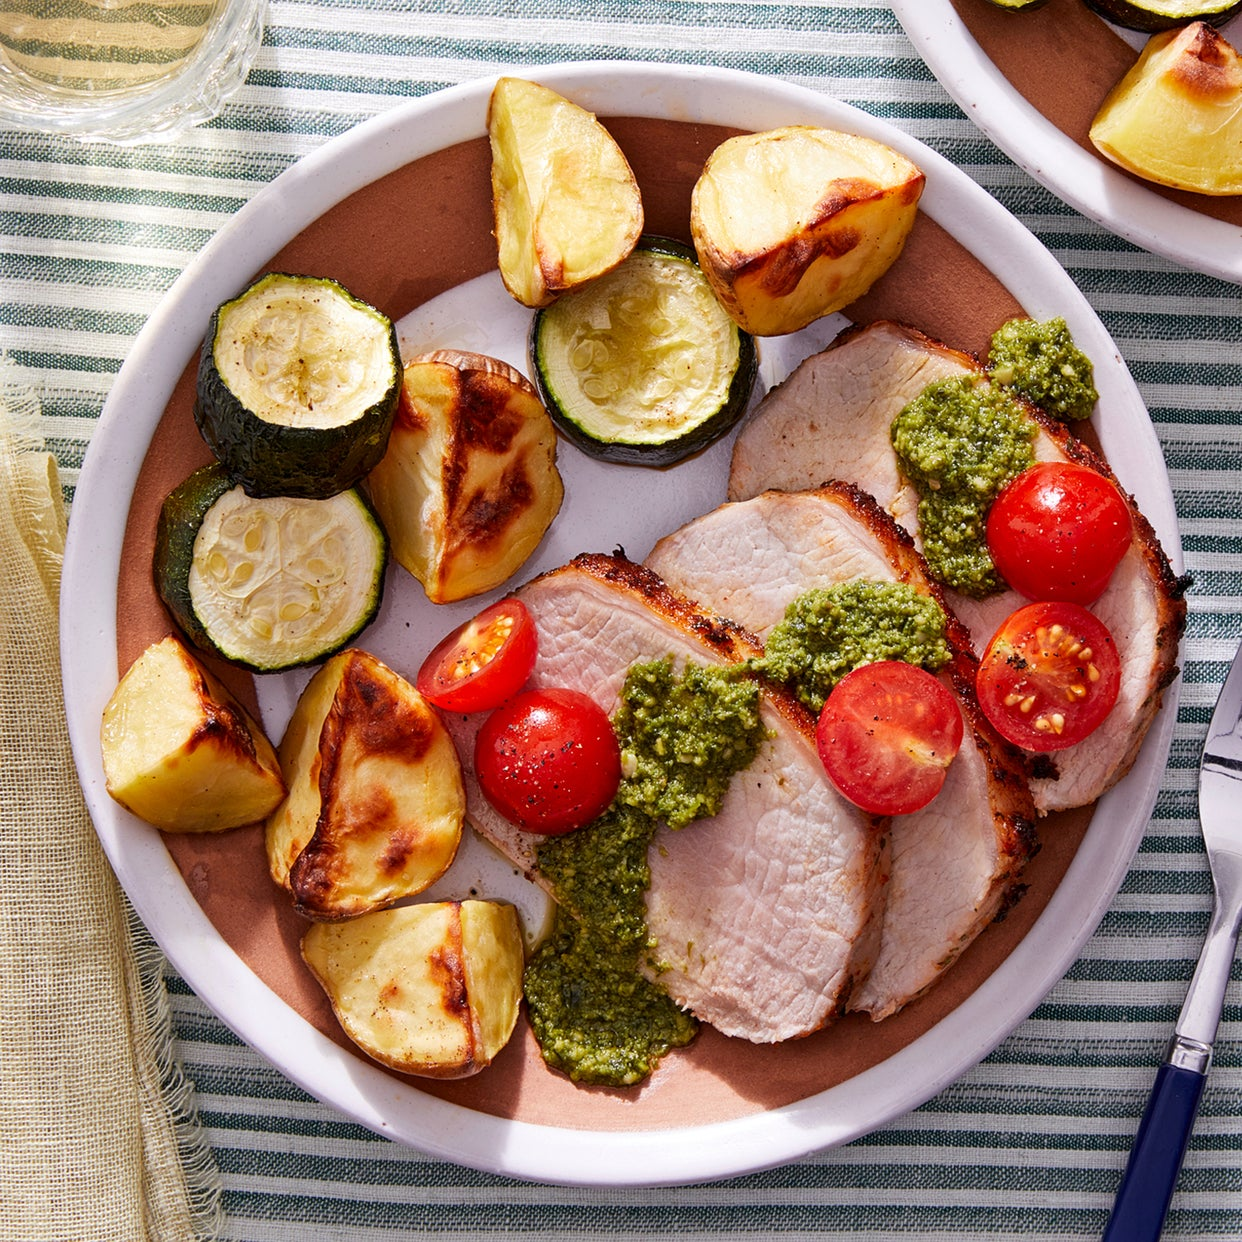 Roast Pork & Vegetables with Basil Pesto & Marinated Tomatoes